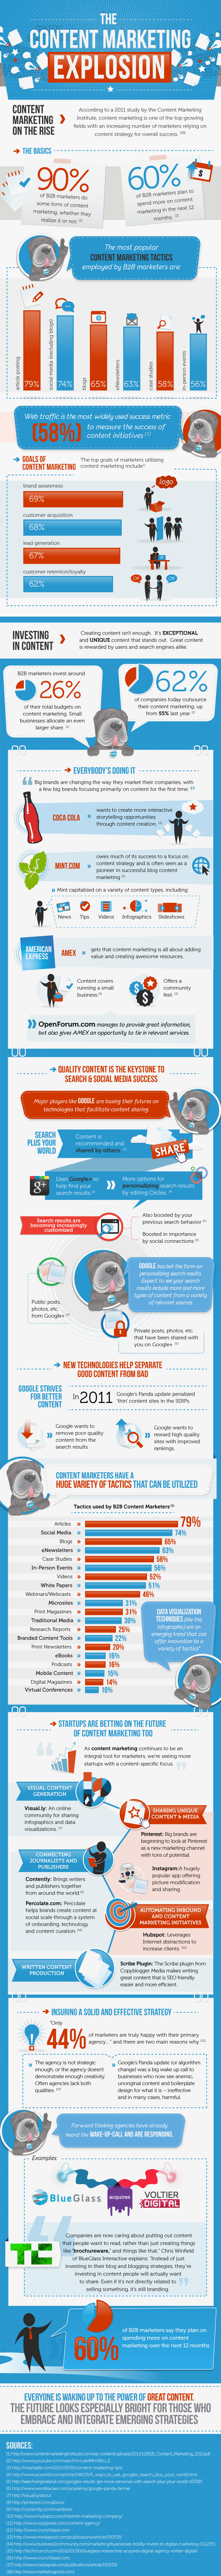 Blueglass-Content-Marketing-Explosion-infographic